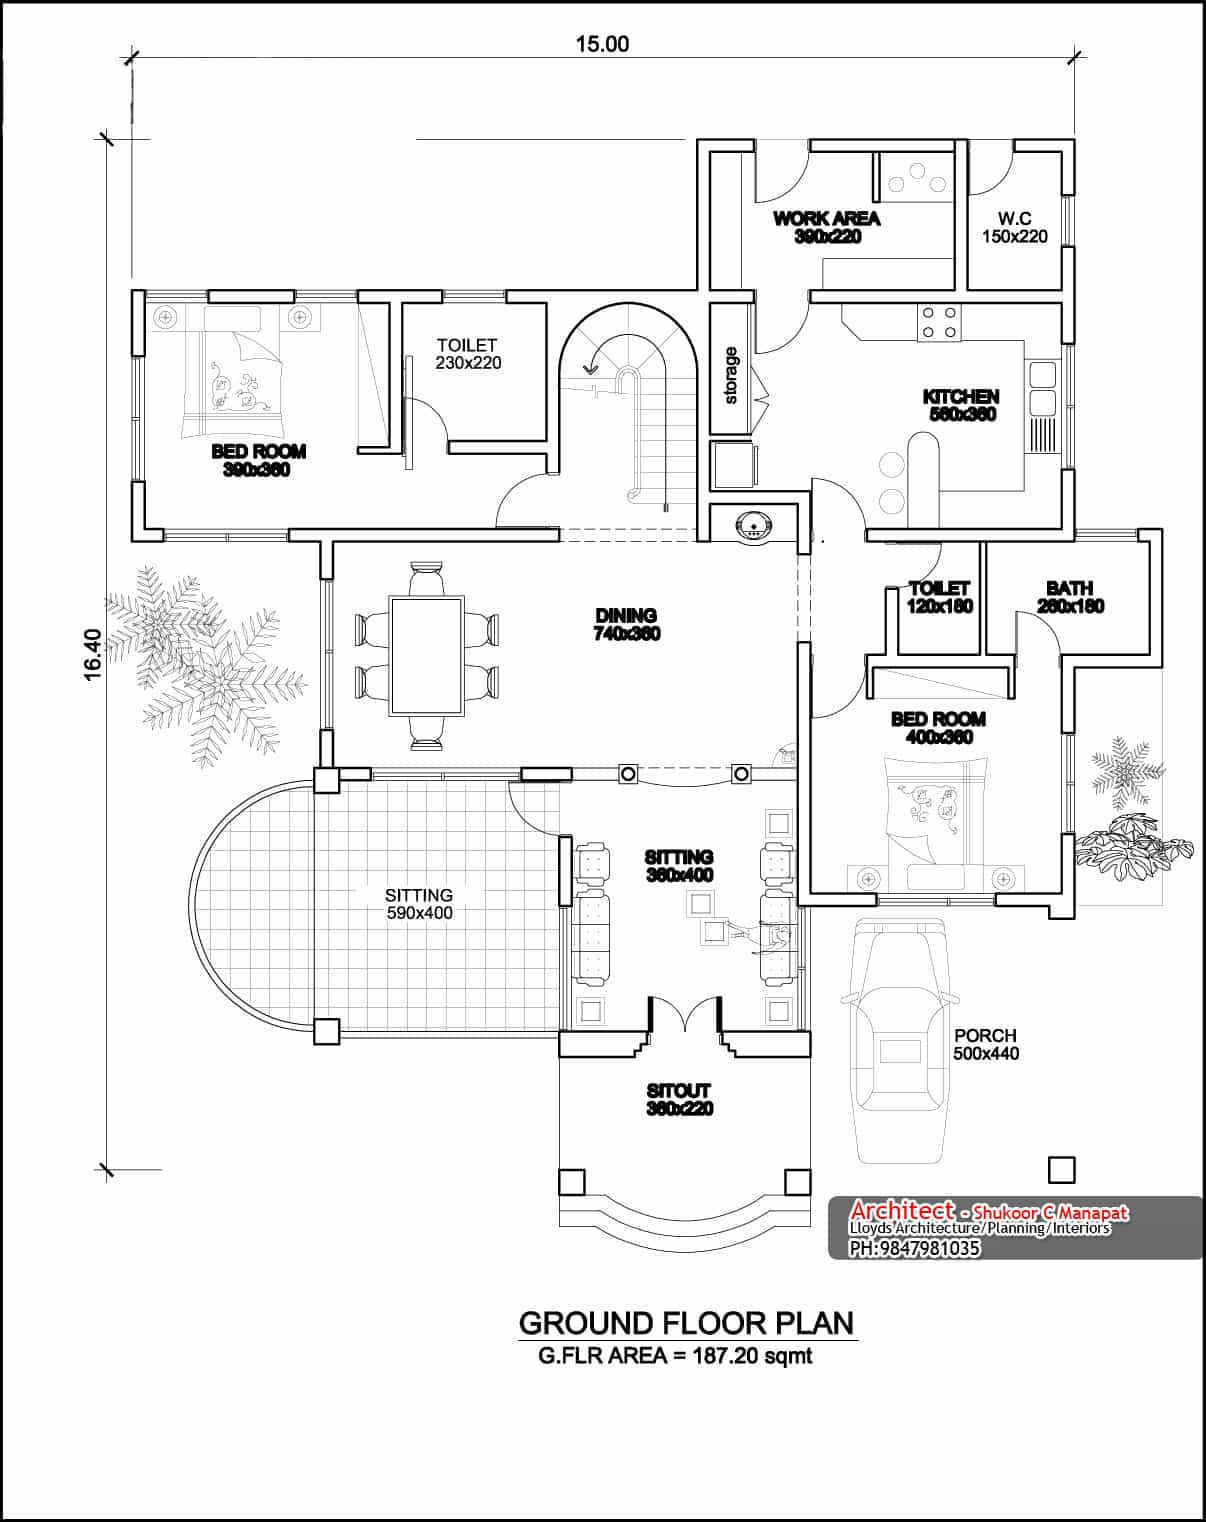 Two Storey Four Bedroom House Design at 3236 Sq.Ft (With Plan)